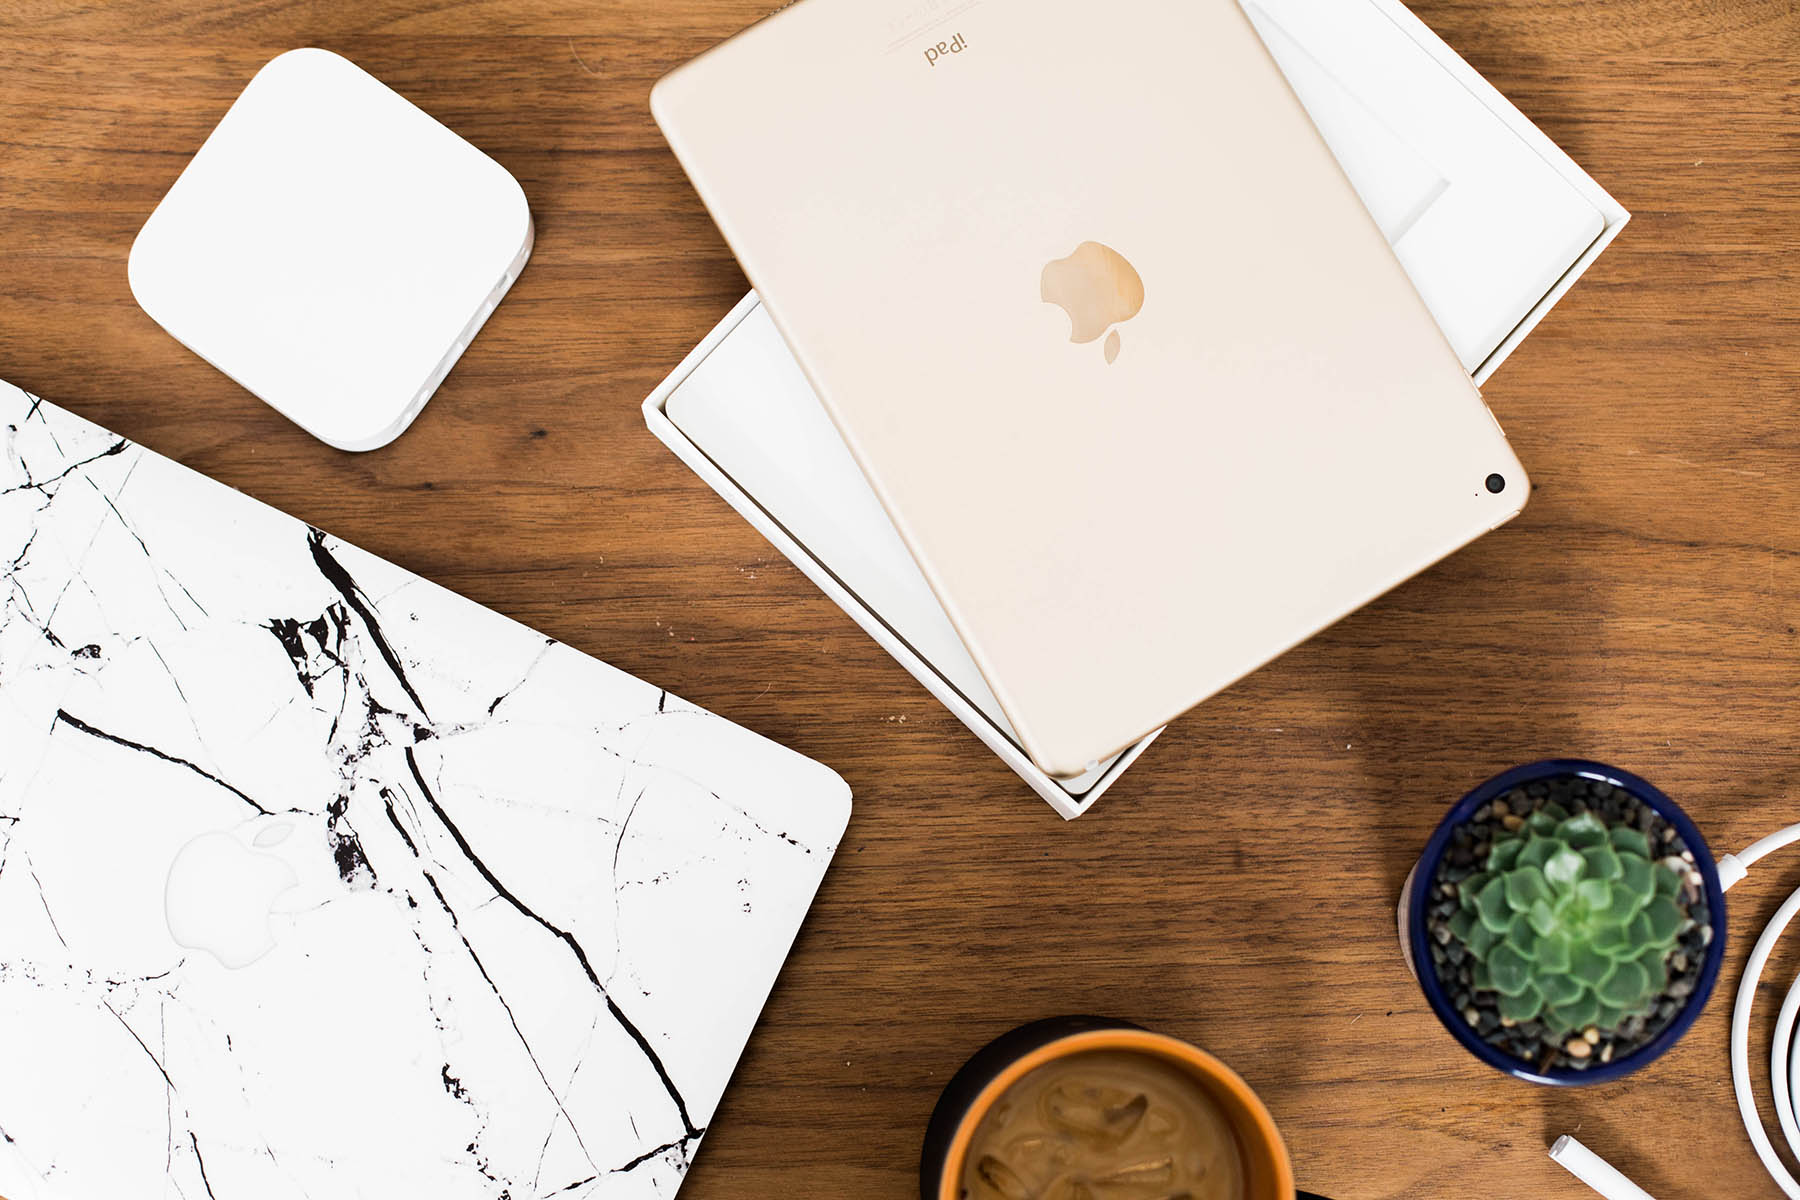 Apple products on coffee table, Airport, iPad and Macbook Pro with marble cover